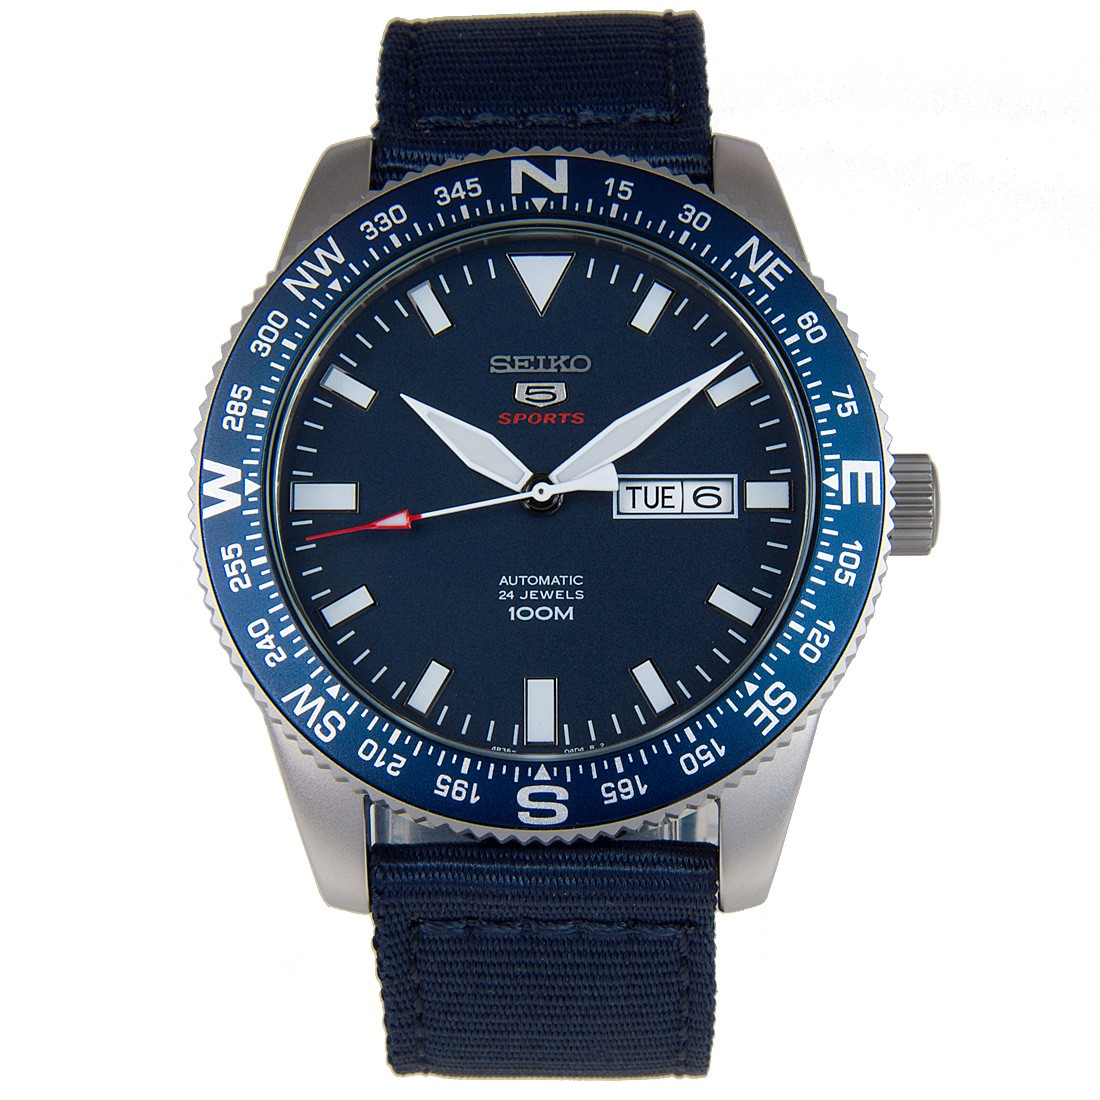 Seiko 5 Sports Automatic Watch SRP665K1